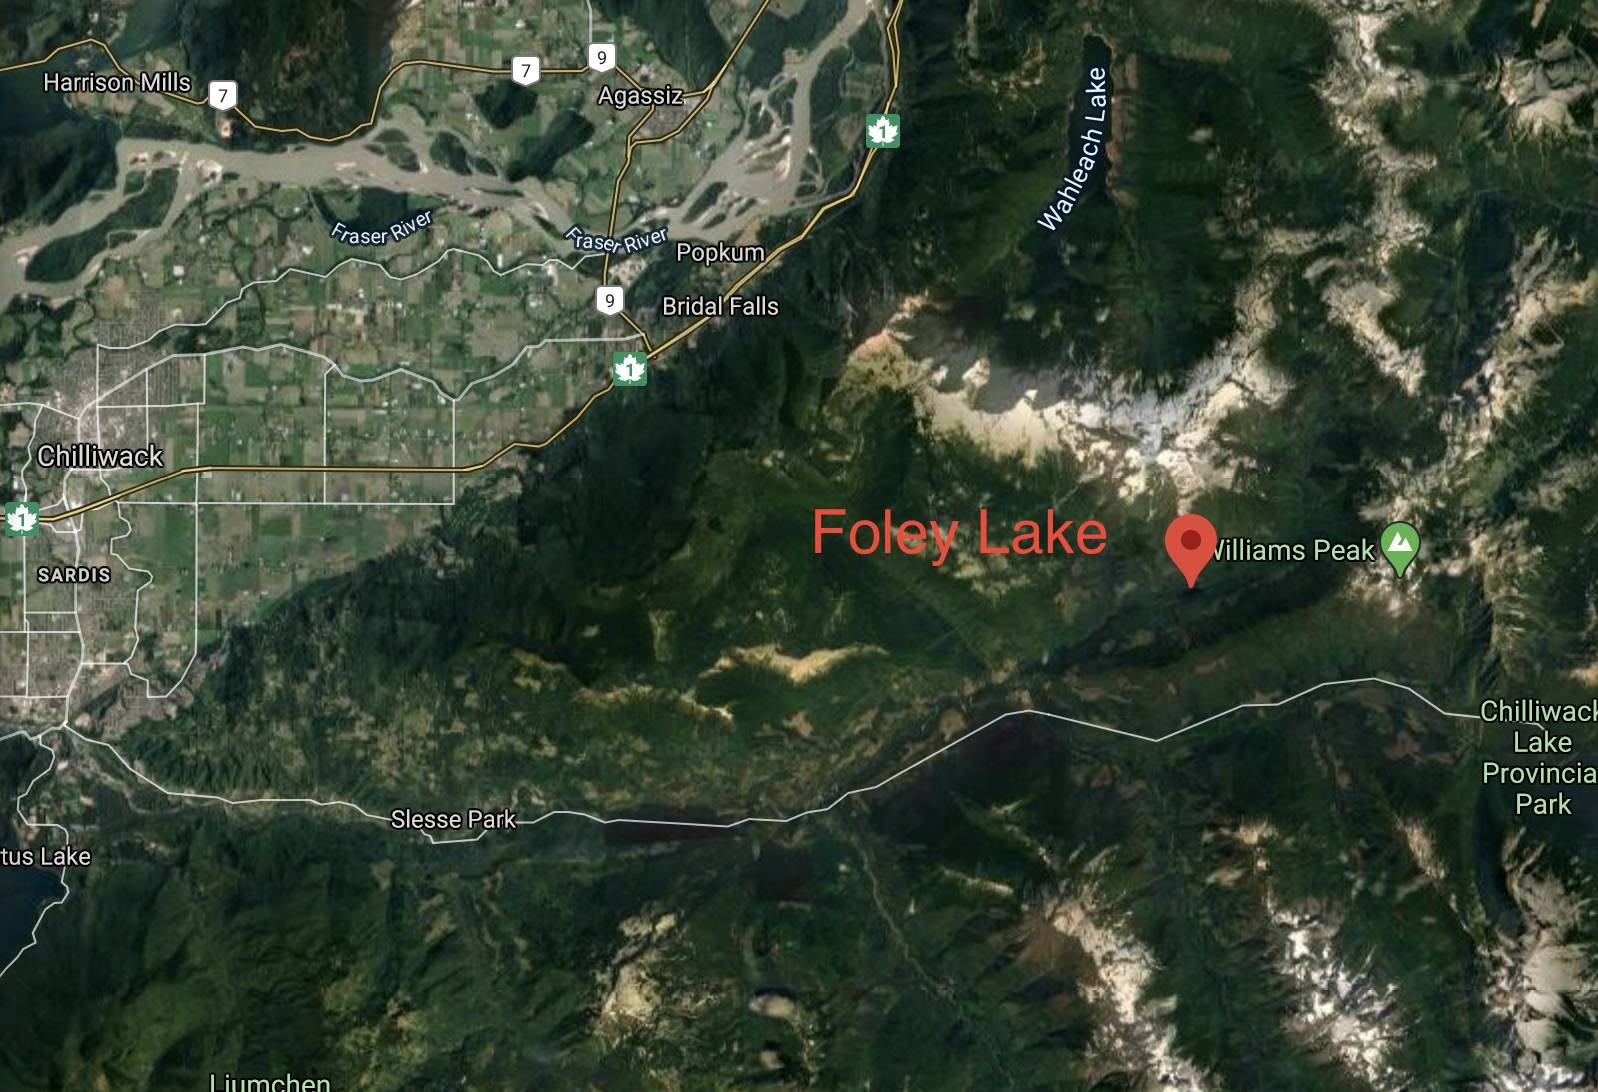 Foley Lake in the Chilliwack River Valley where a side-by-side vehicle carrying five people went into the water on May 3, 2020 killing two children. (GoogleMaps)